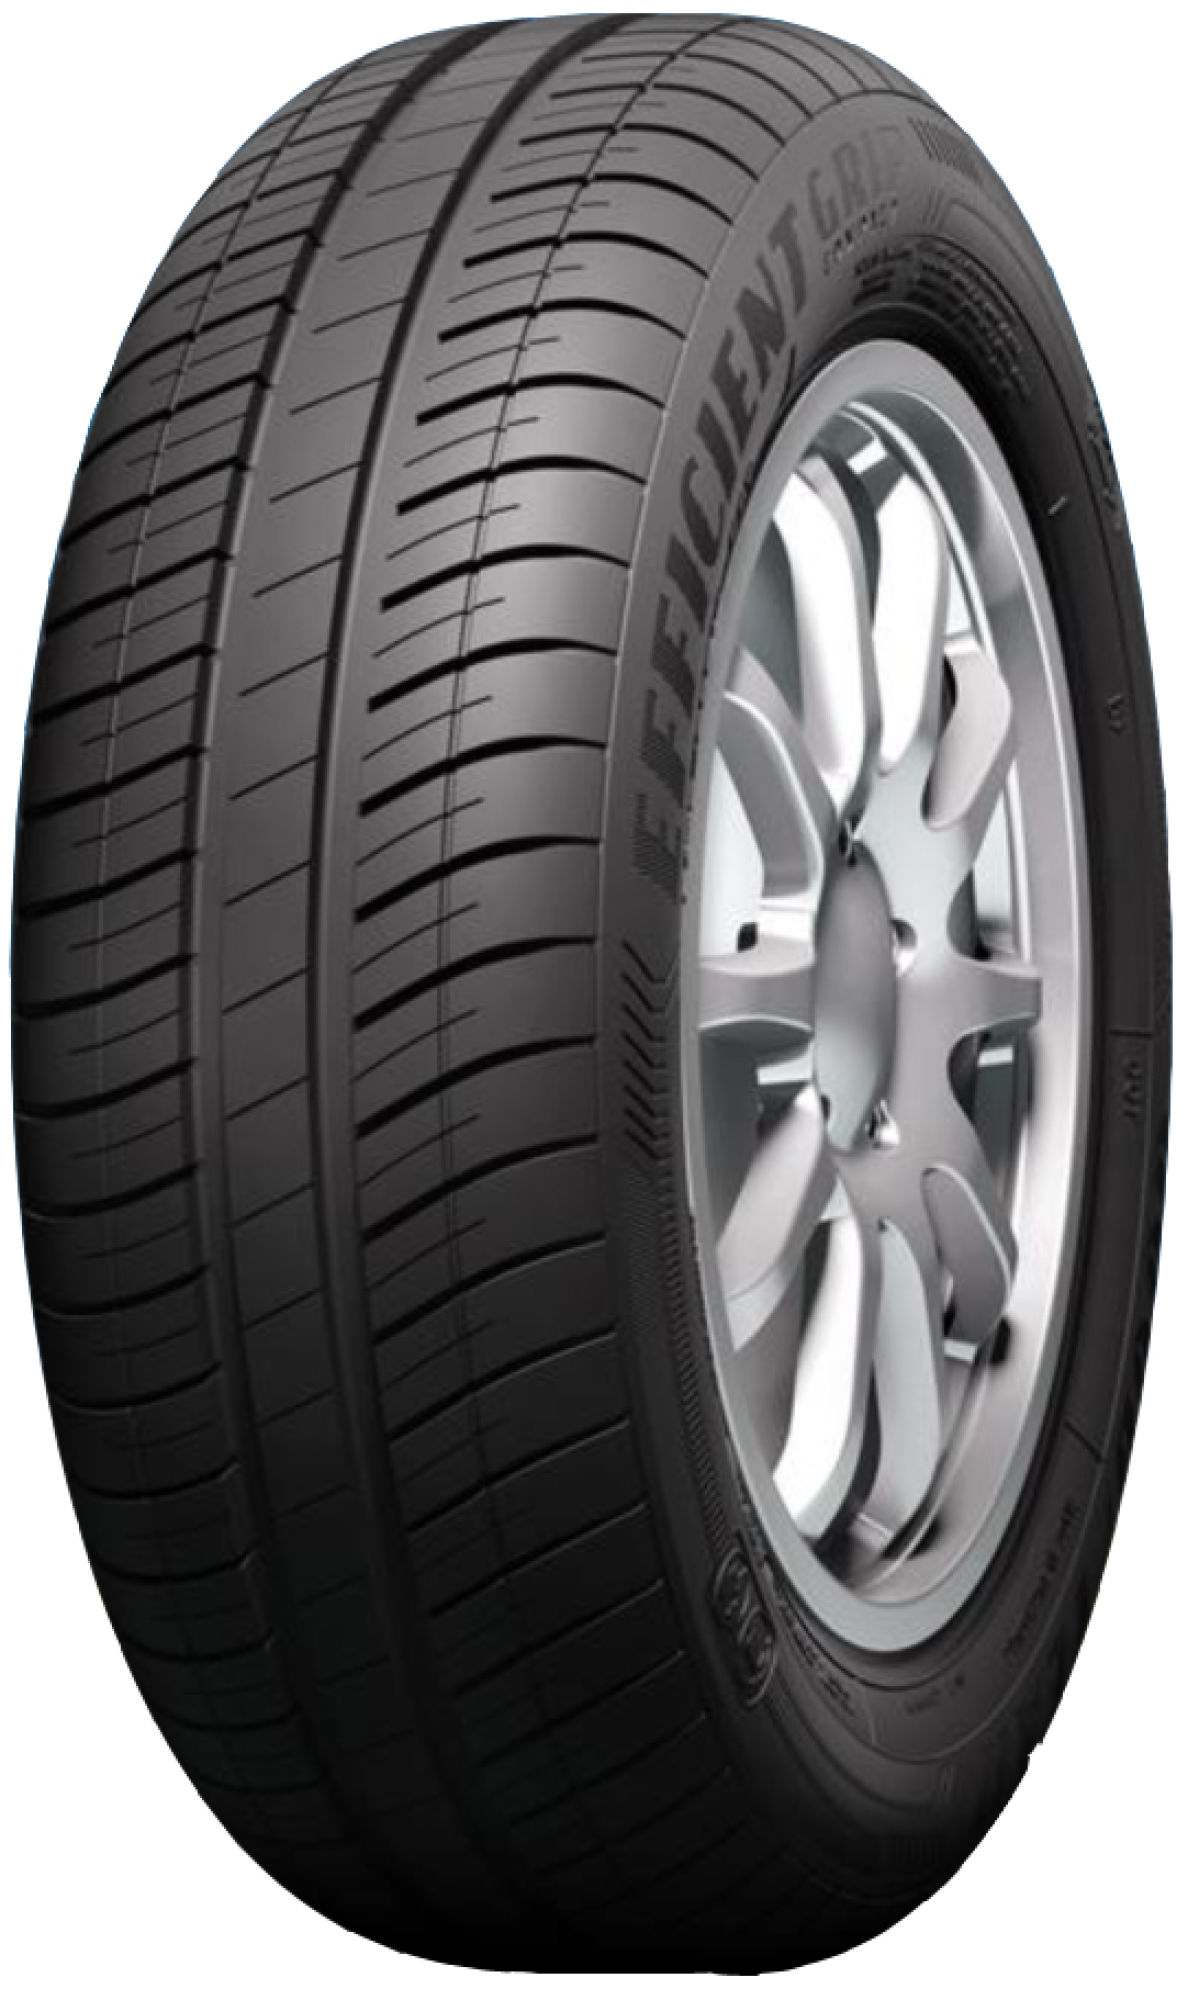 175/65R15 84T EfficientGrip Compact GoodYear